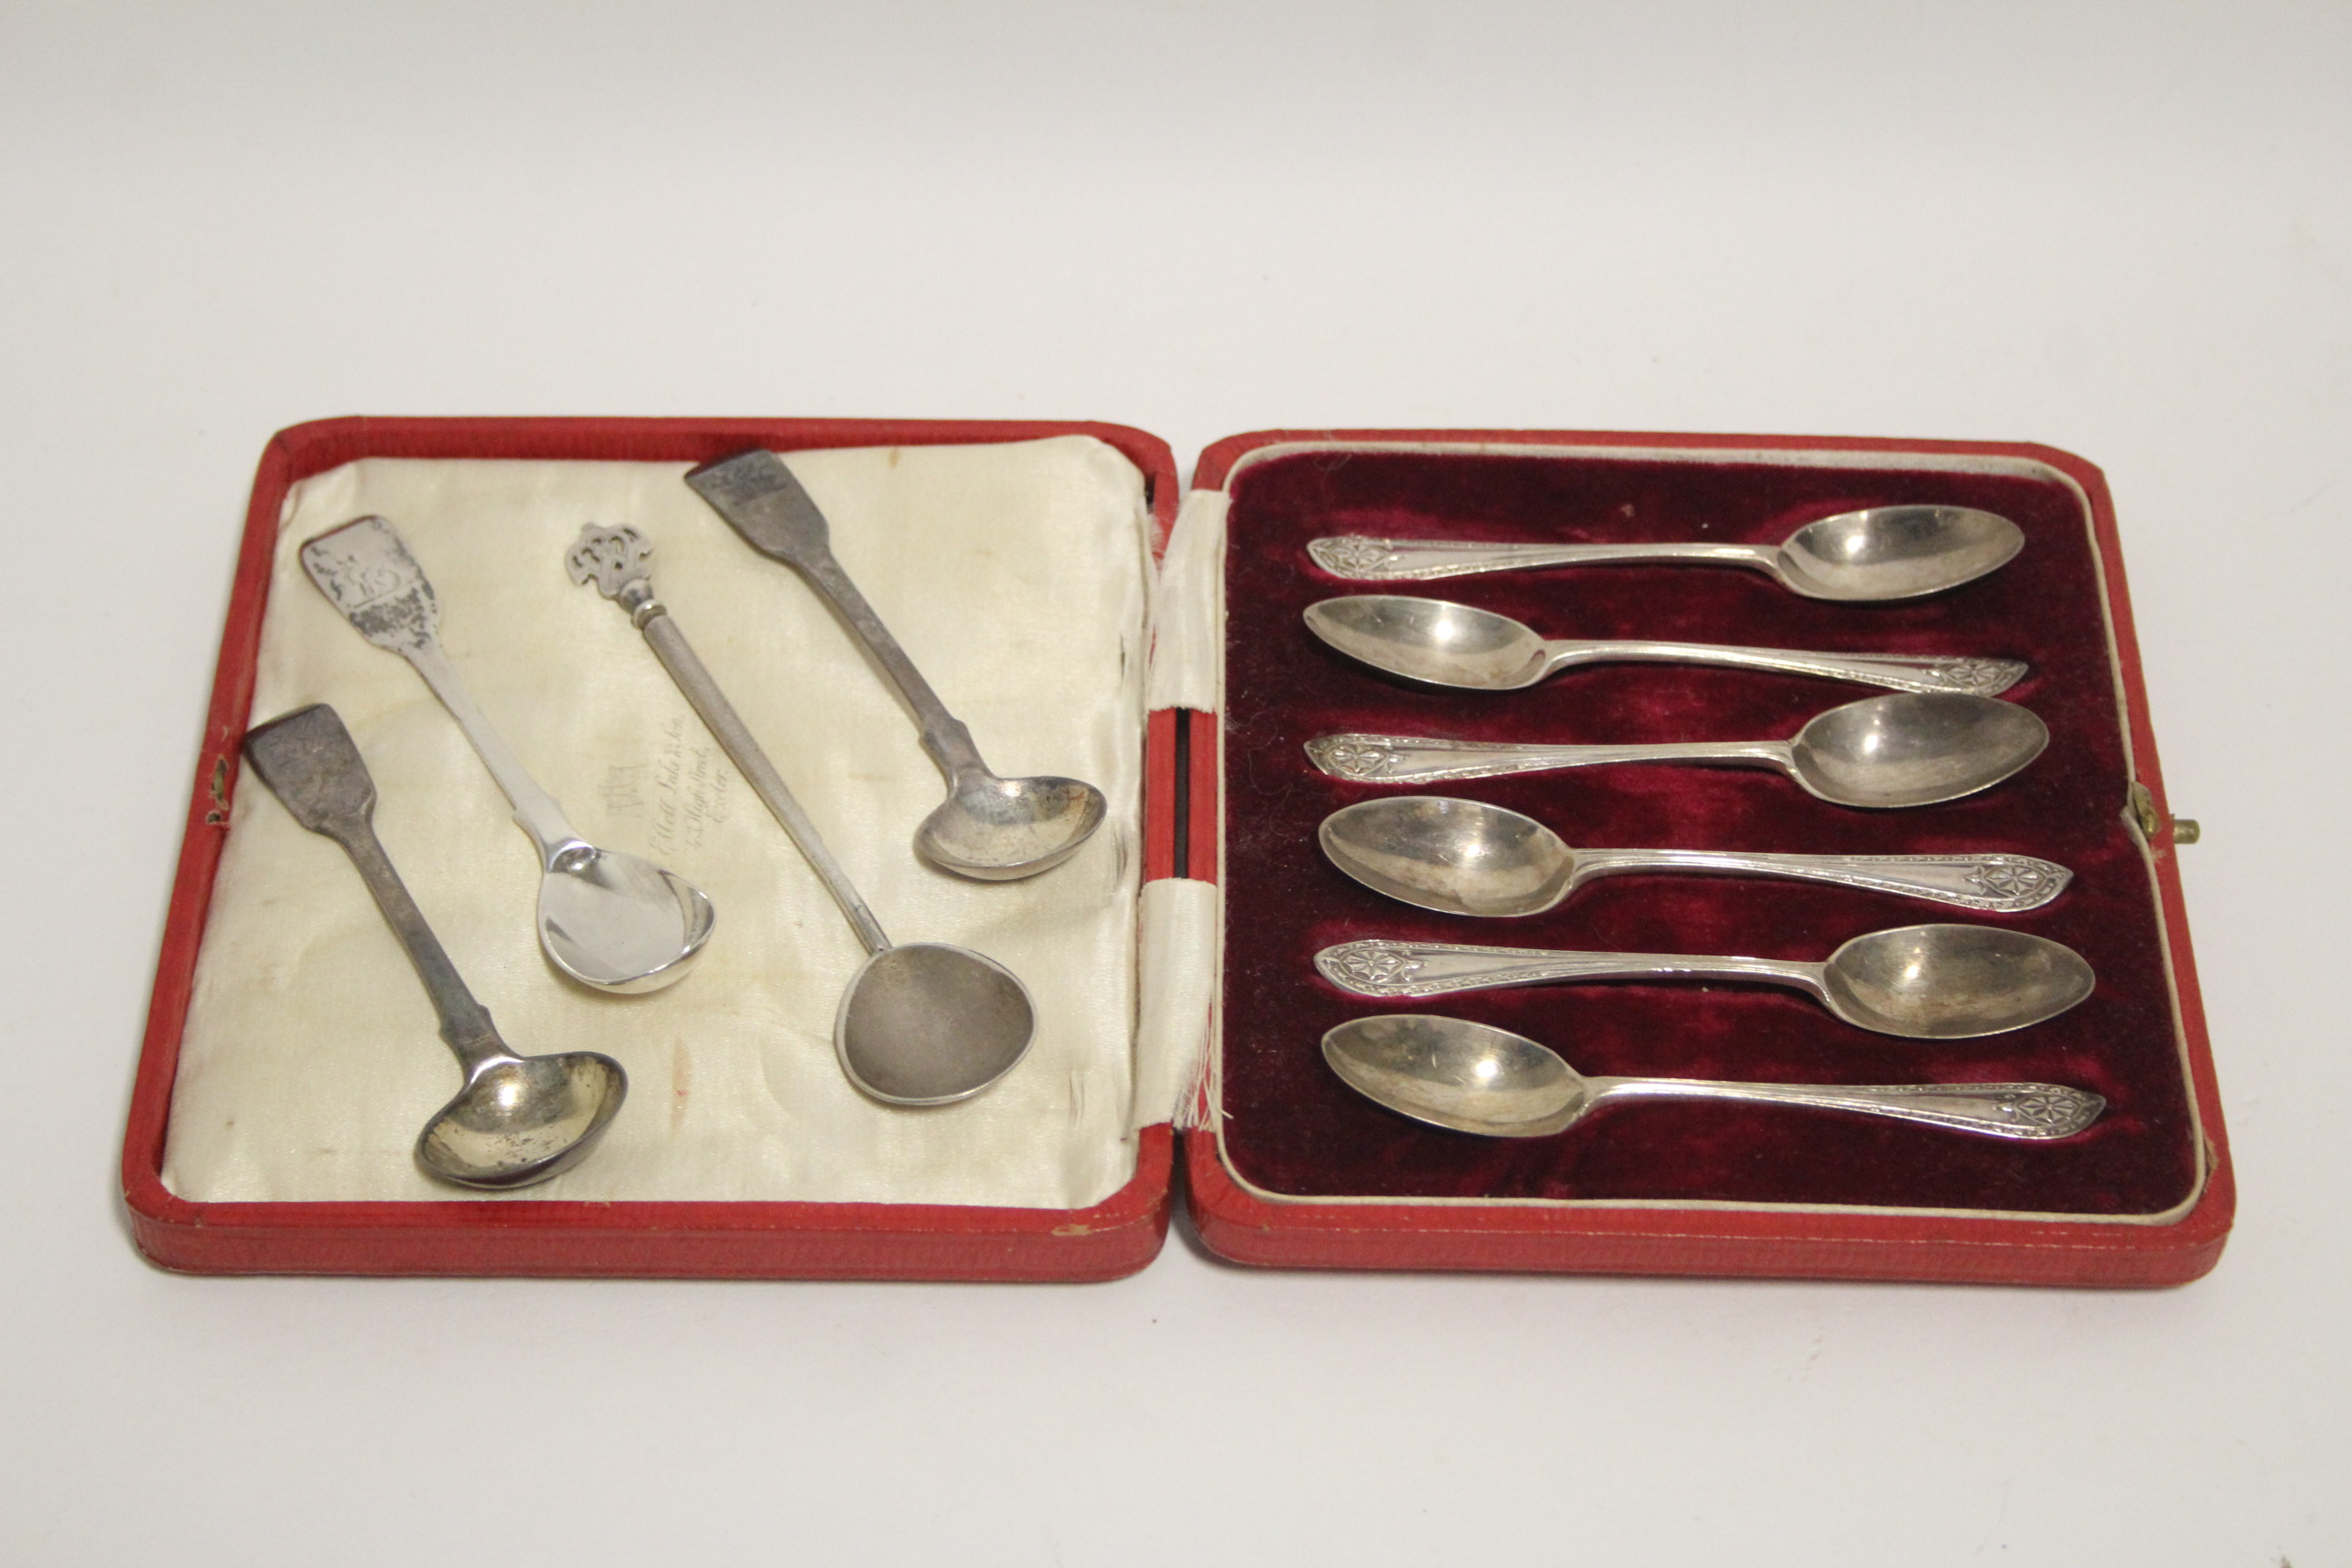 Lot 40 - A set of six coffee spoons wit fancy terminals, London 1918, by D. L. Fullerton, in fitted case;